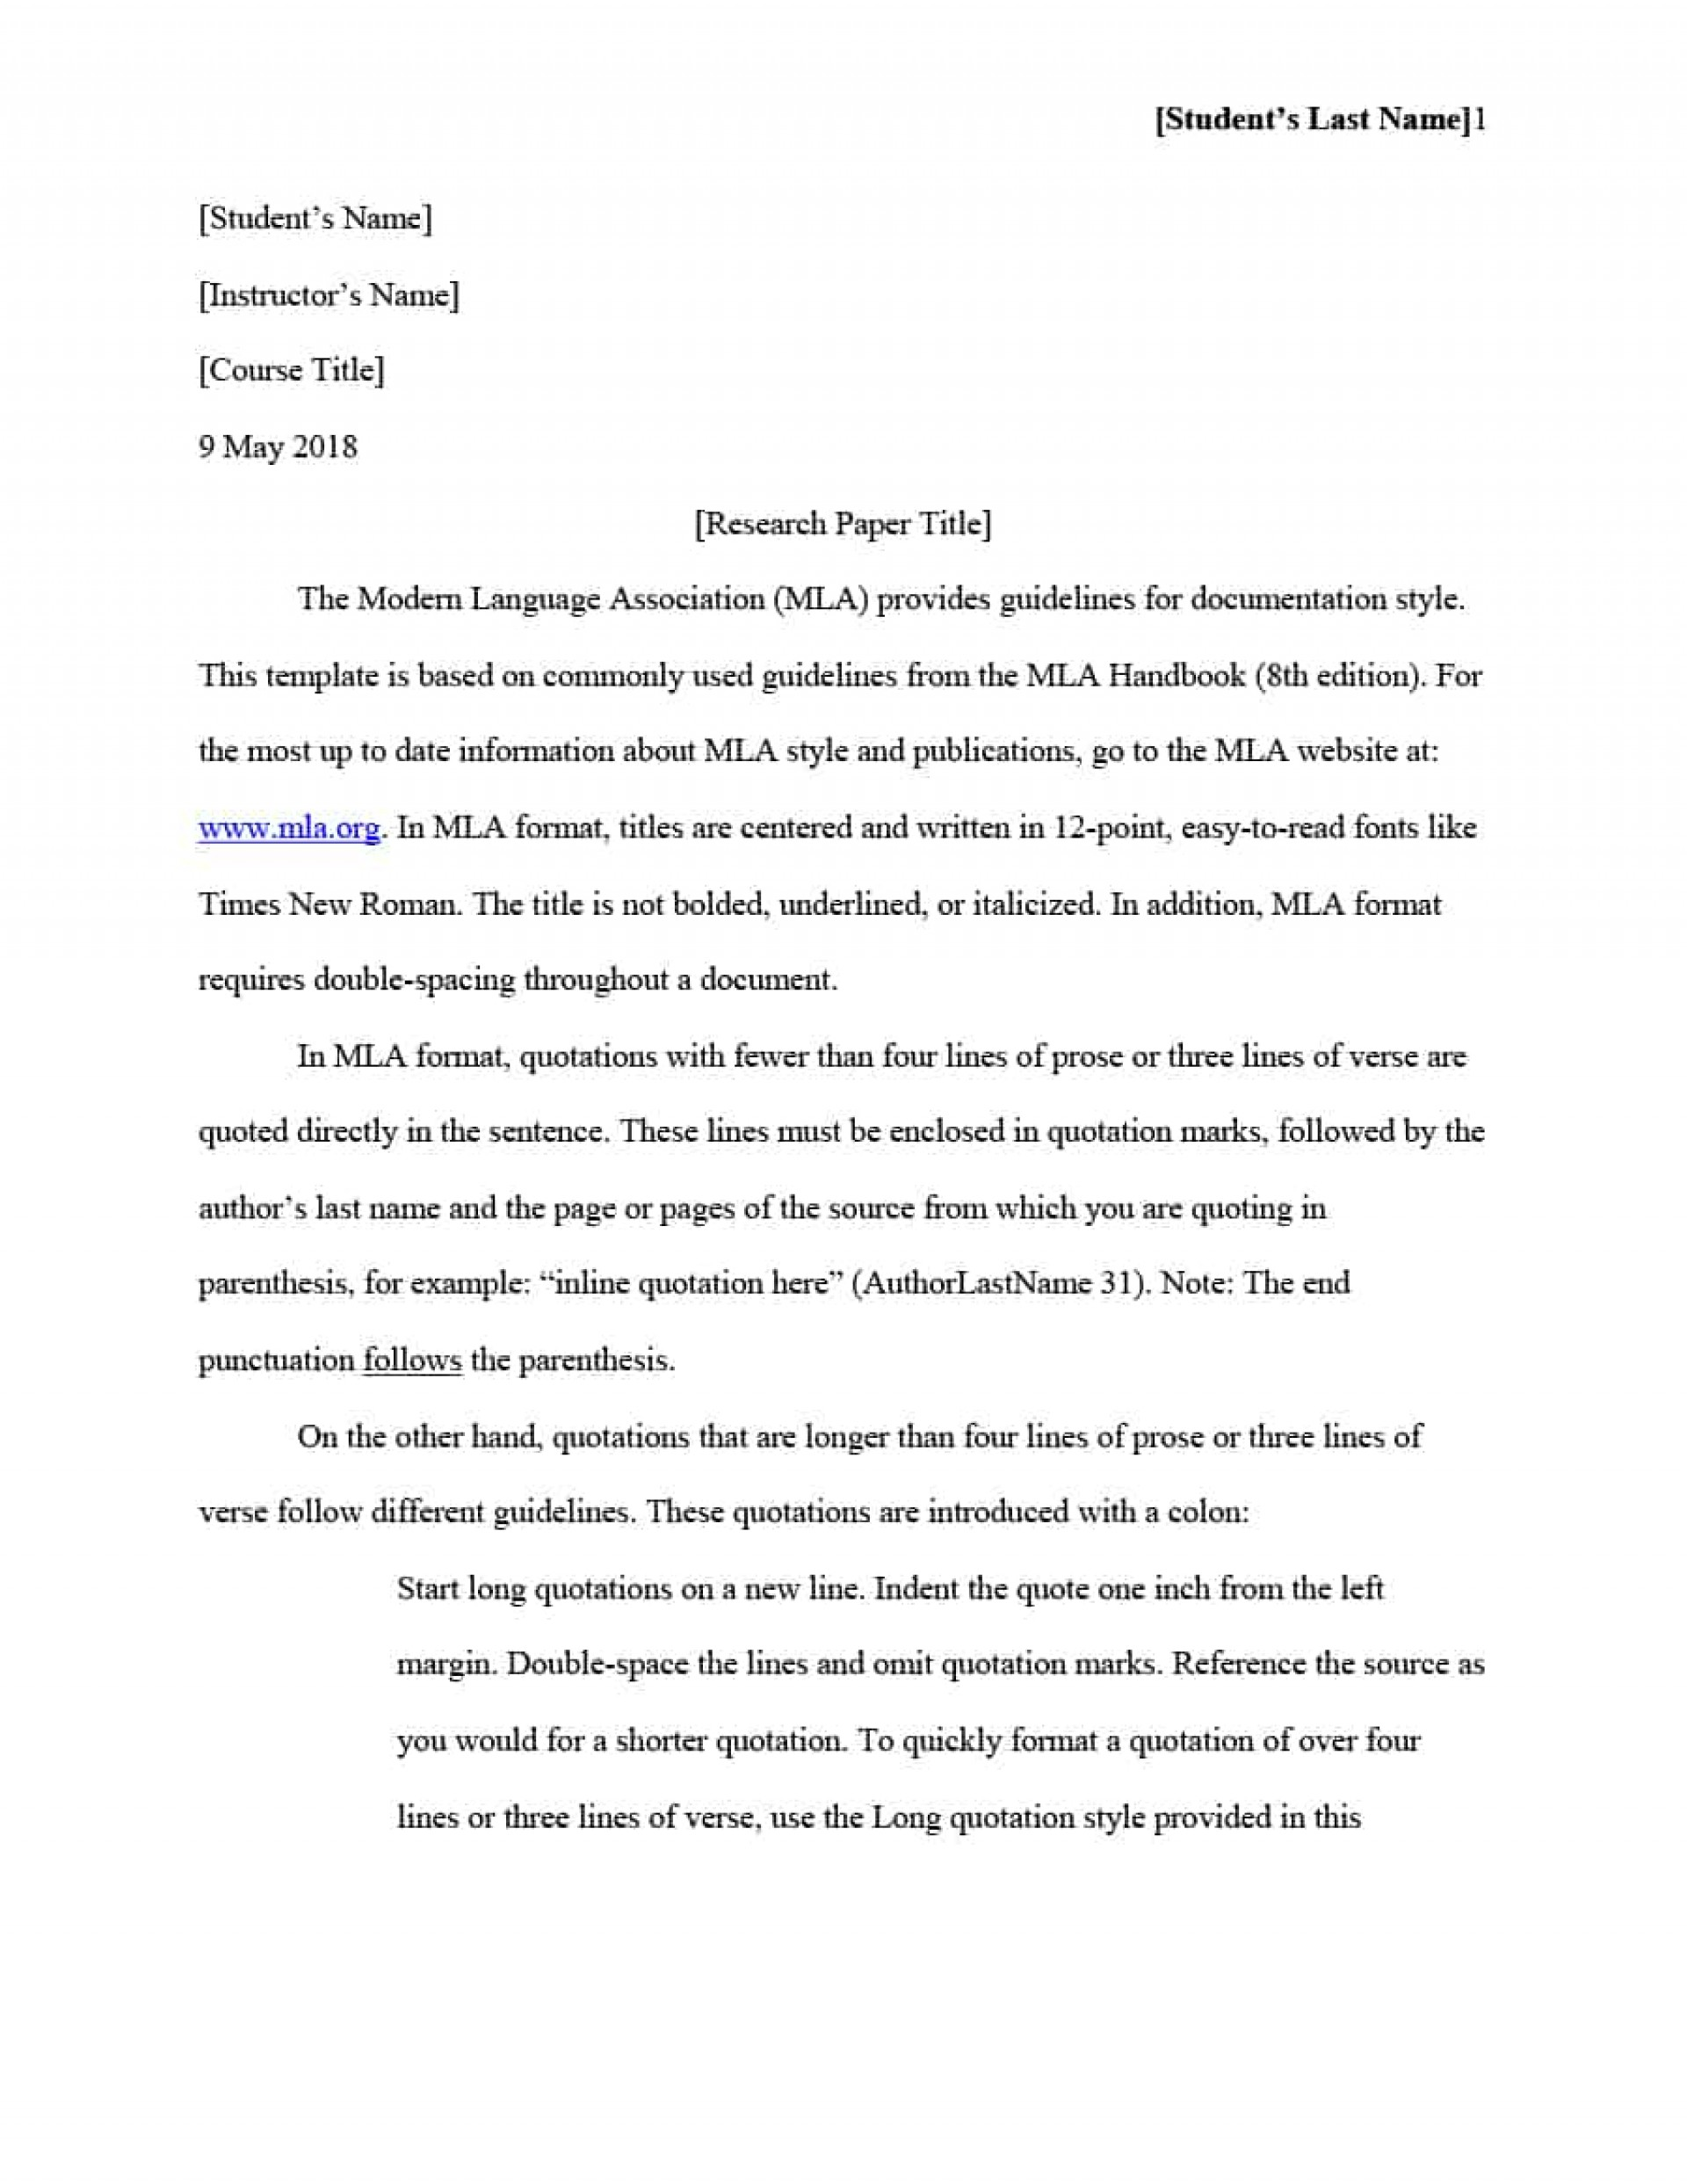 008 Essay Example What Is Mla Format For Essays Template Unique Proper An 8 1920